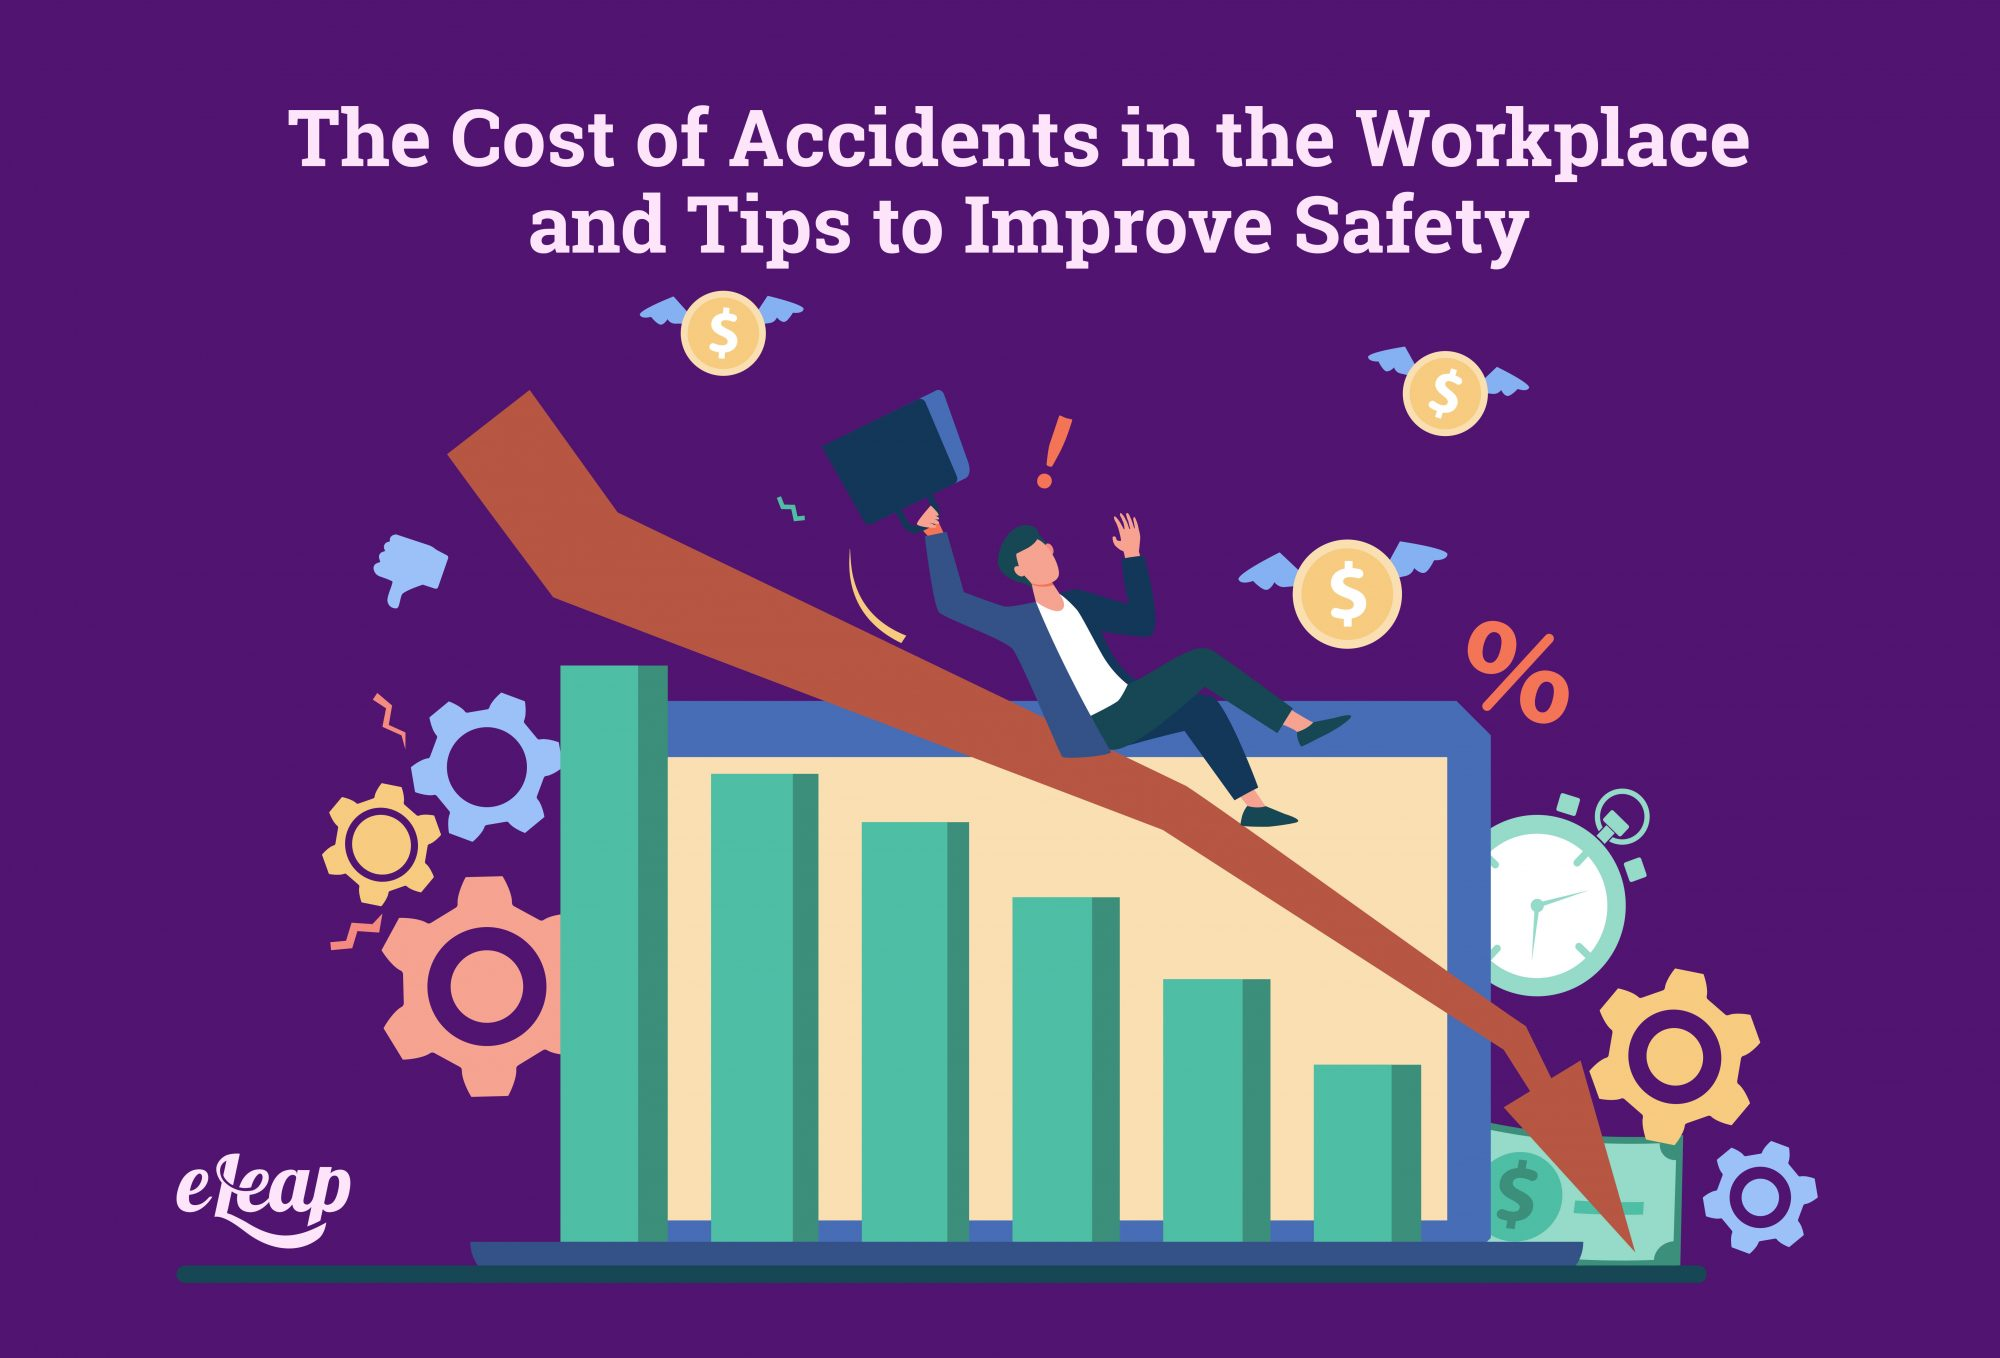 The Cost of Accidents in the Workplace and Tips to Improve Safety